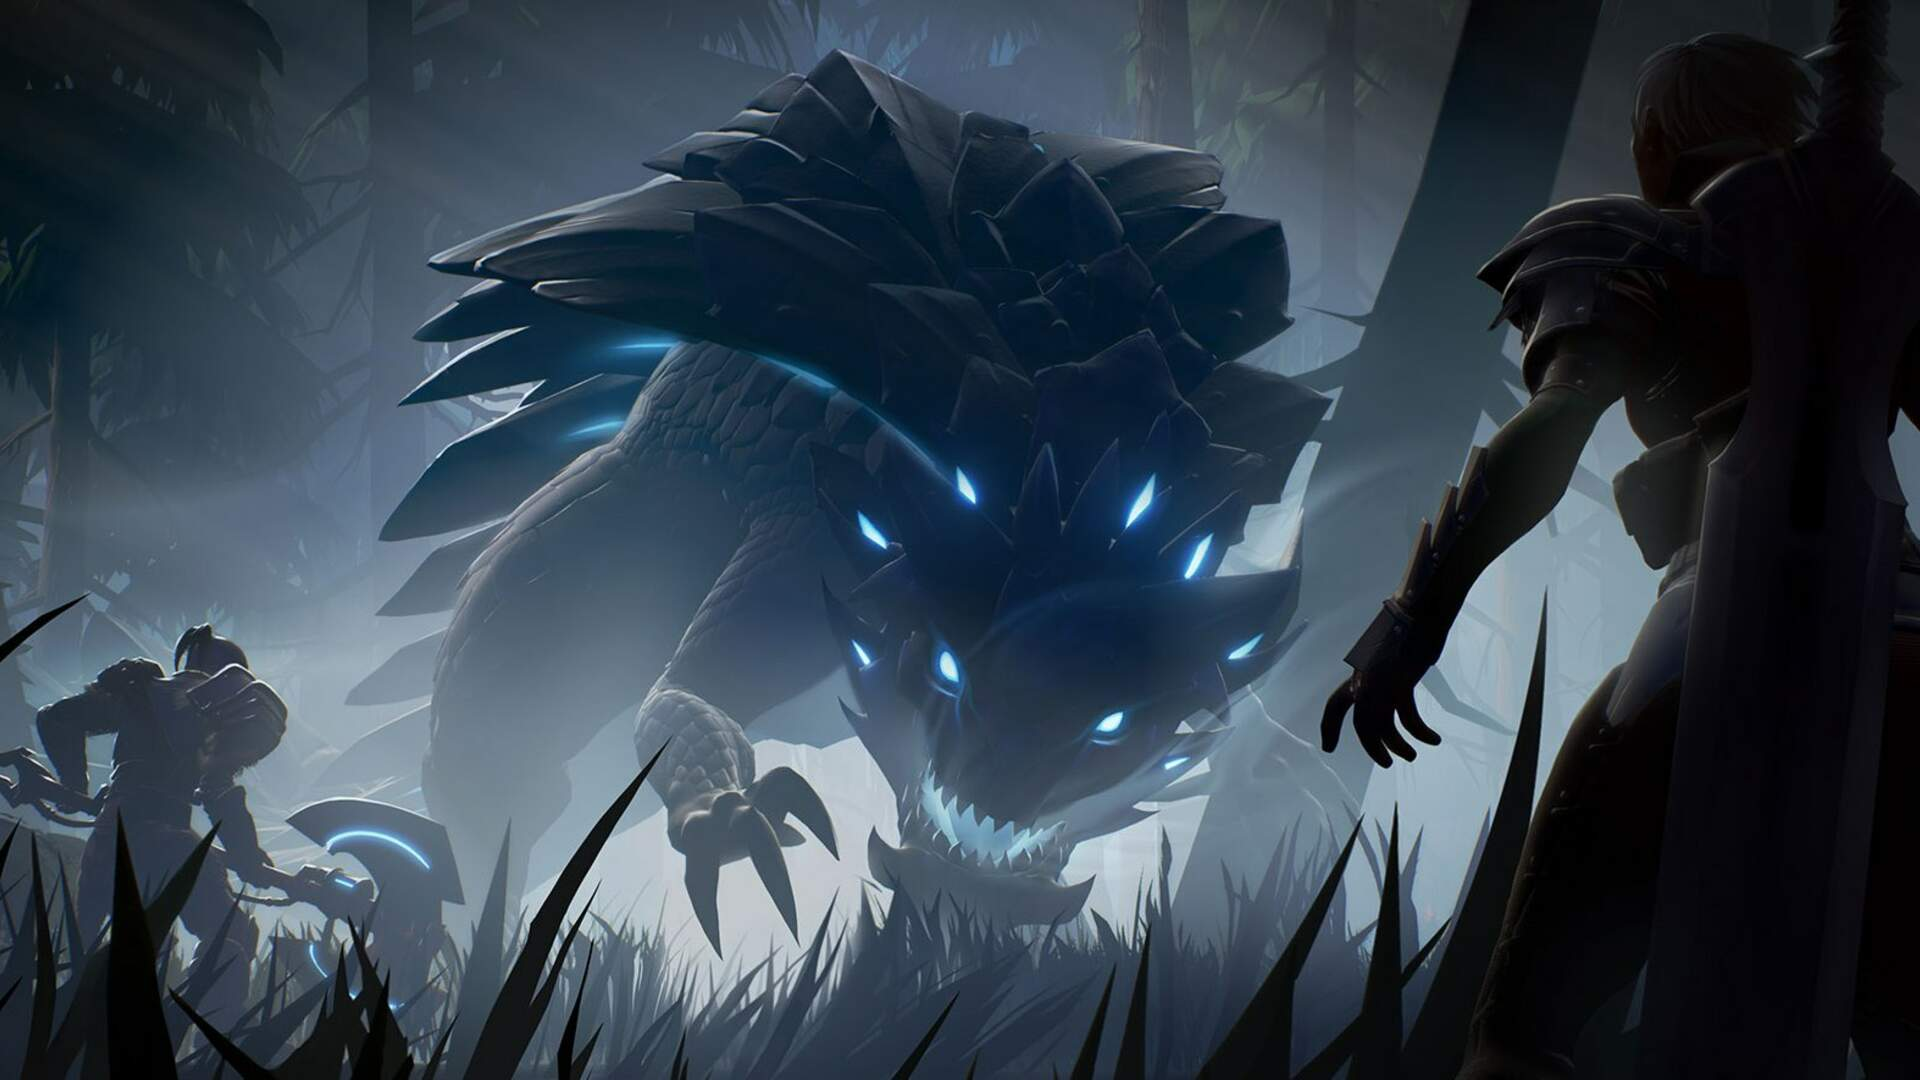 Dauntless Behemoths - Every Dauntless Behemoth and Their Weaknesses